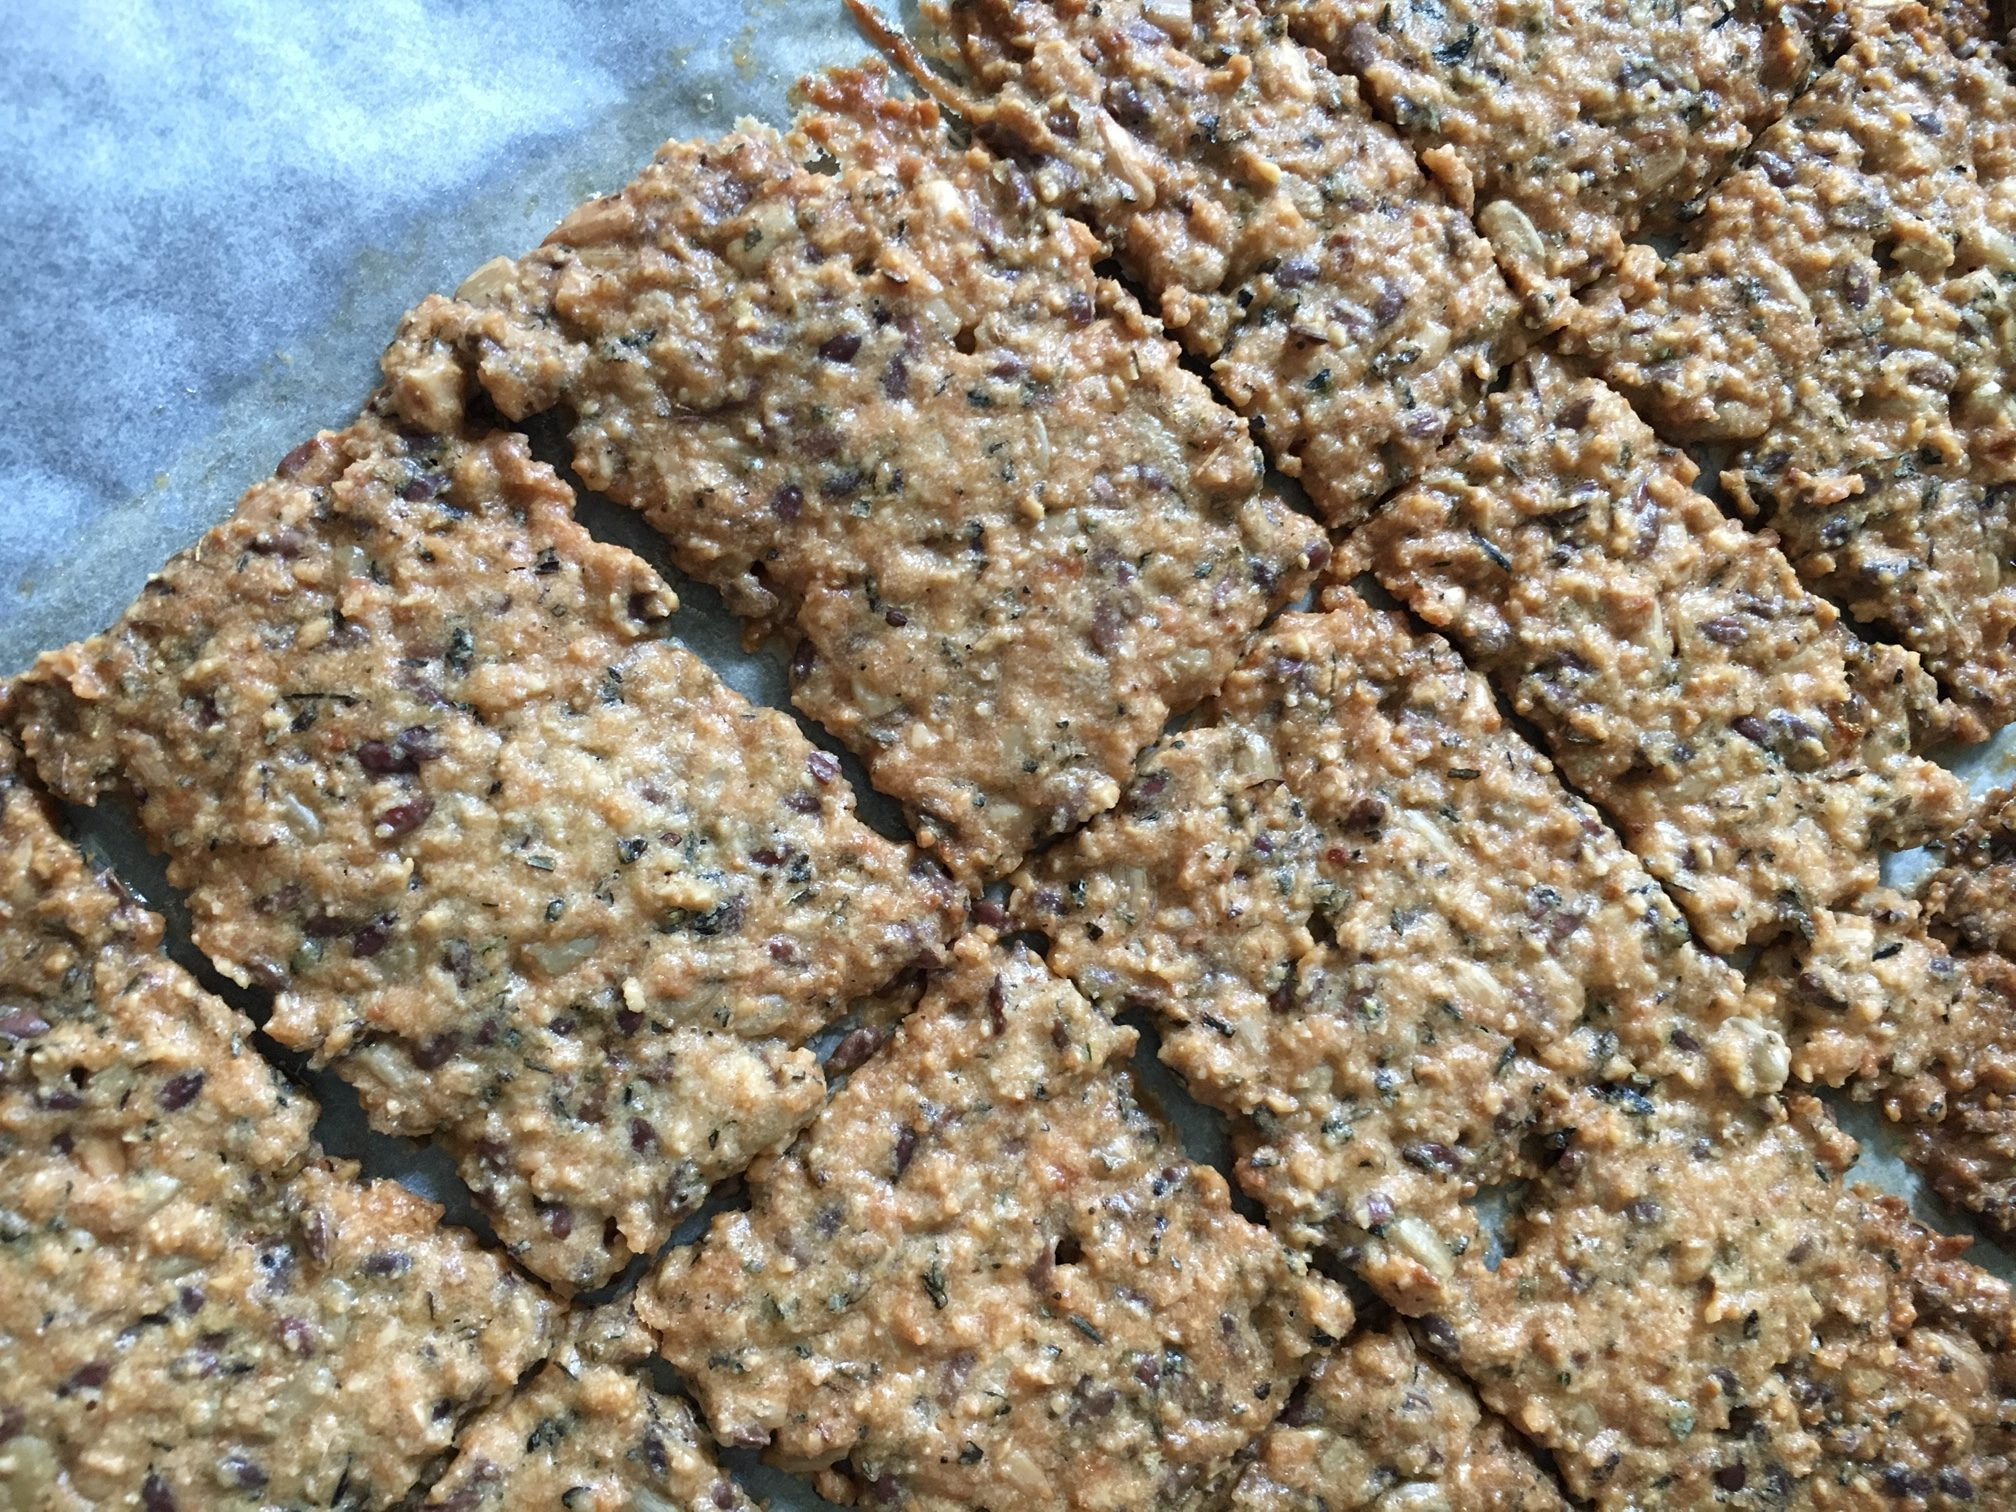 Glutenfree paleo cracker